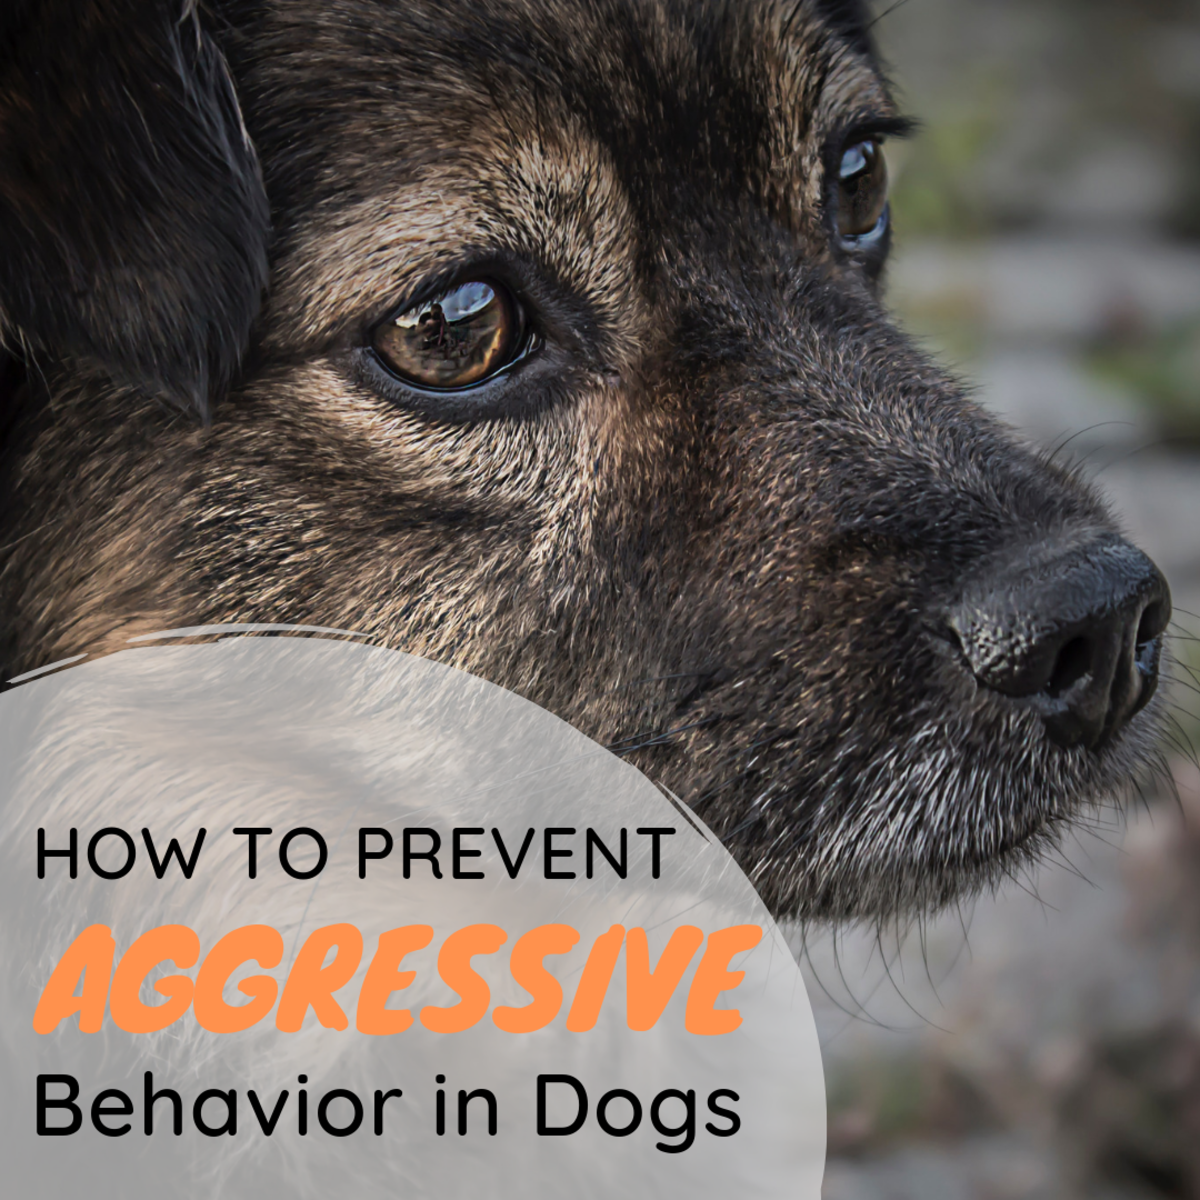 How Pet Owners Can Deal With Dog Aggression